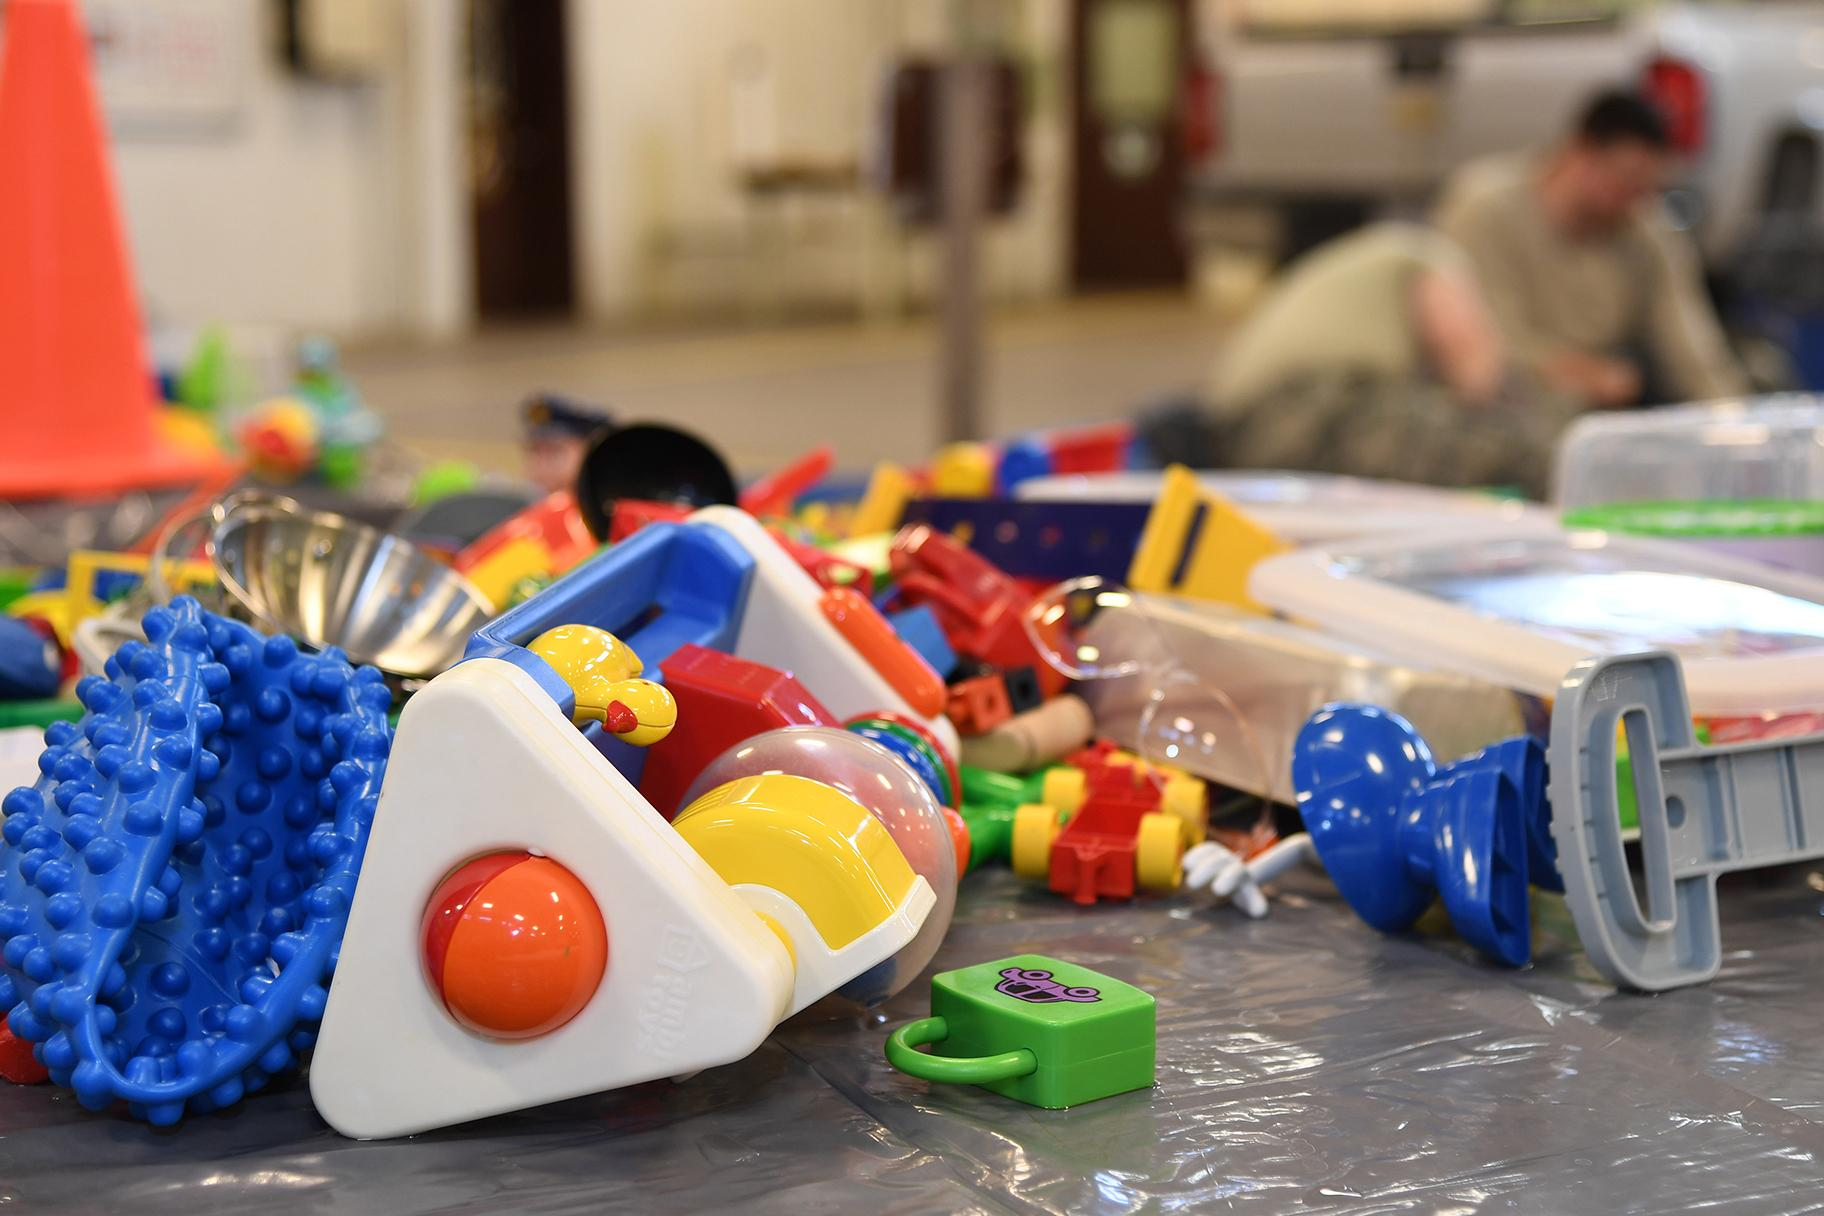 Polyvinyl chloride, which is found in items such as children's toys, is typically not able to be recycled. (U.S. Air Force photo by Senior Airman Elora J. Martinez)